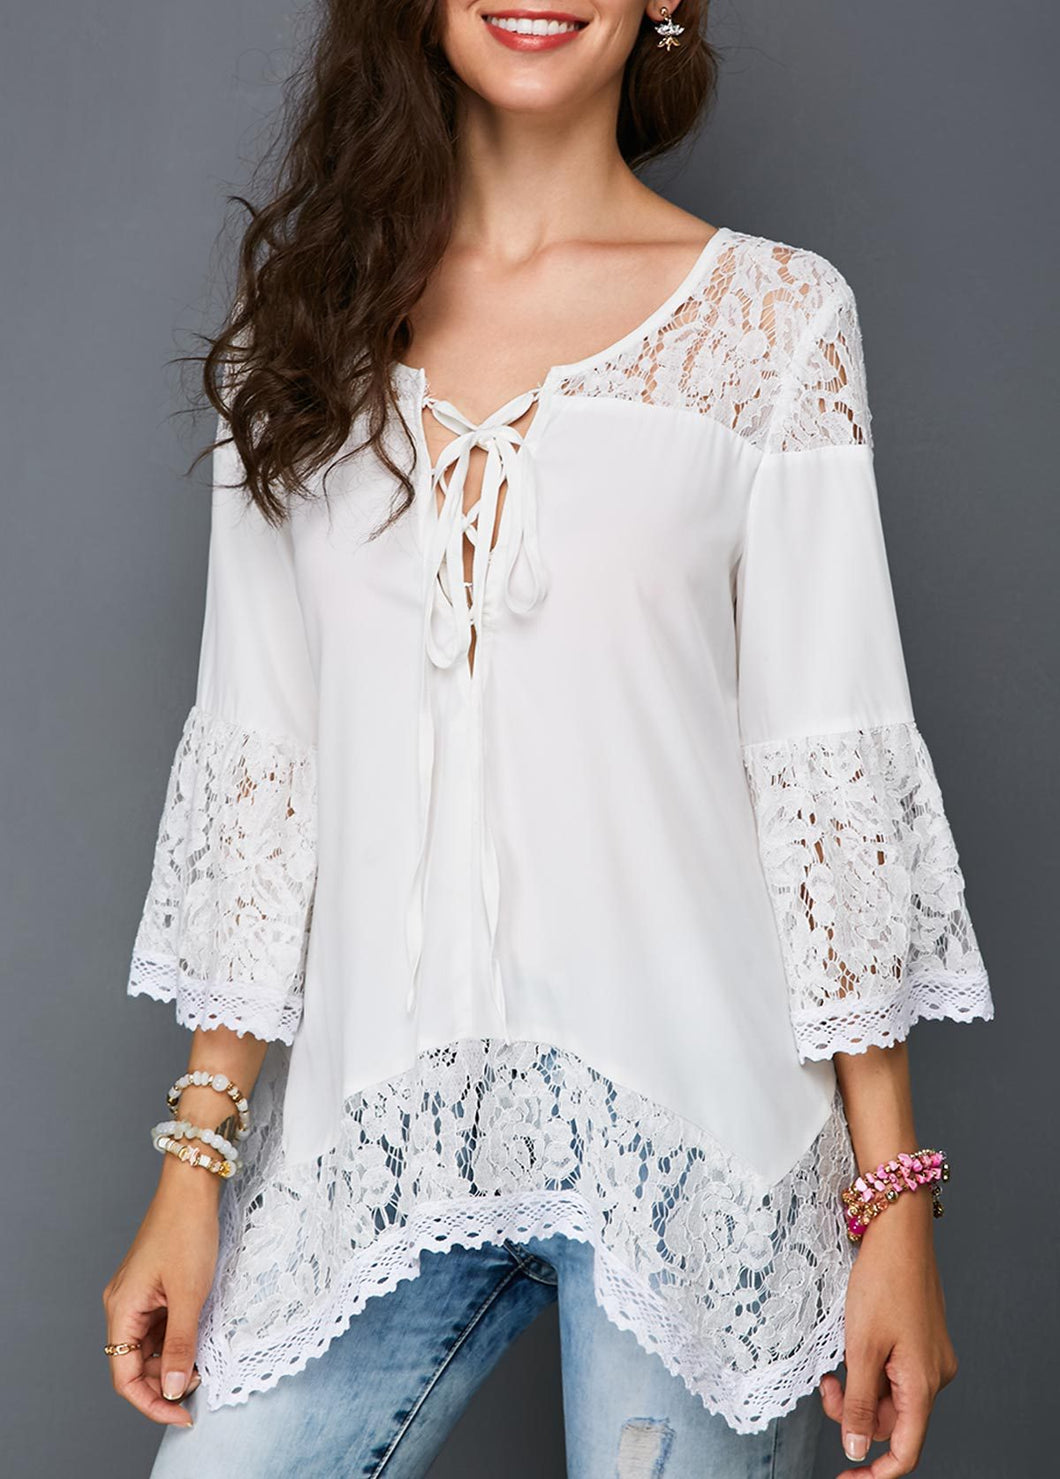 Elegant Fashion Casual Vacation Loose Lace Flare Long Sleeve Blouse - lolabuy